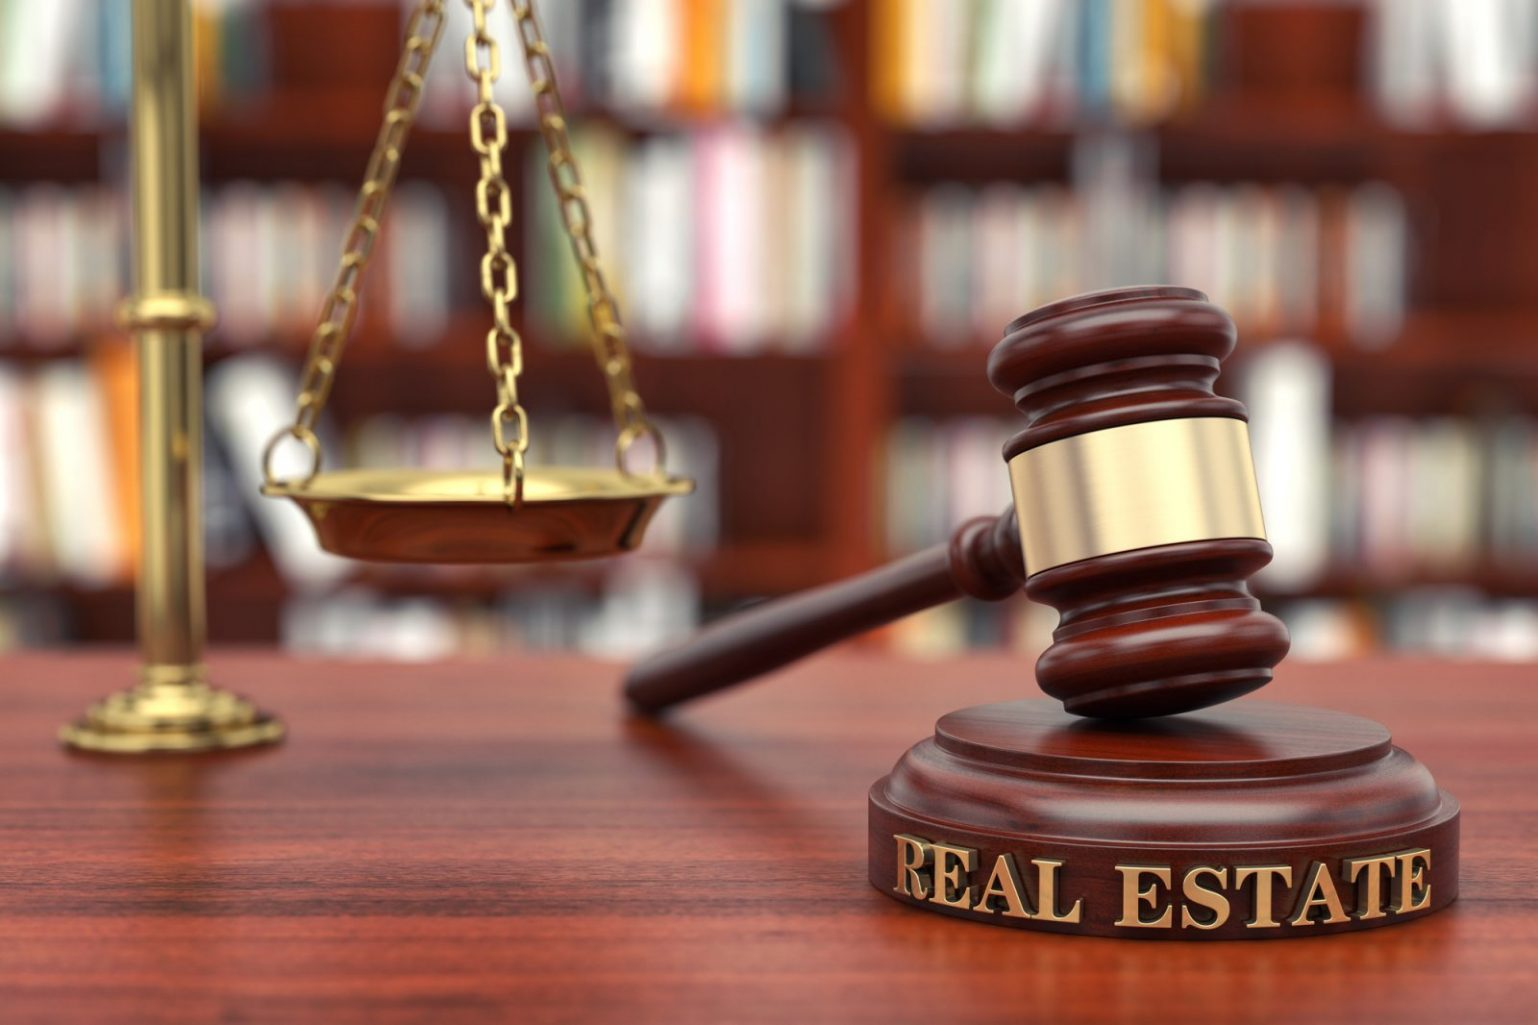 7 Questions to Ask Before Choosing a Real Estate Attorney